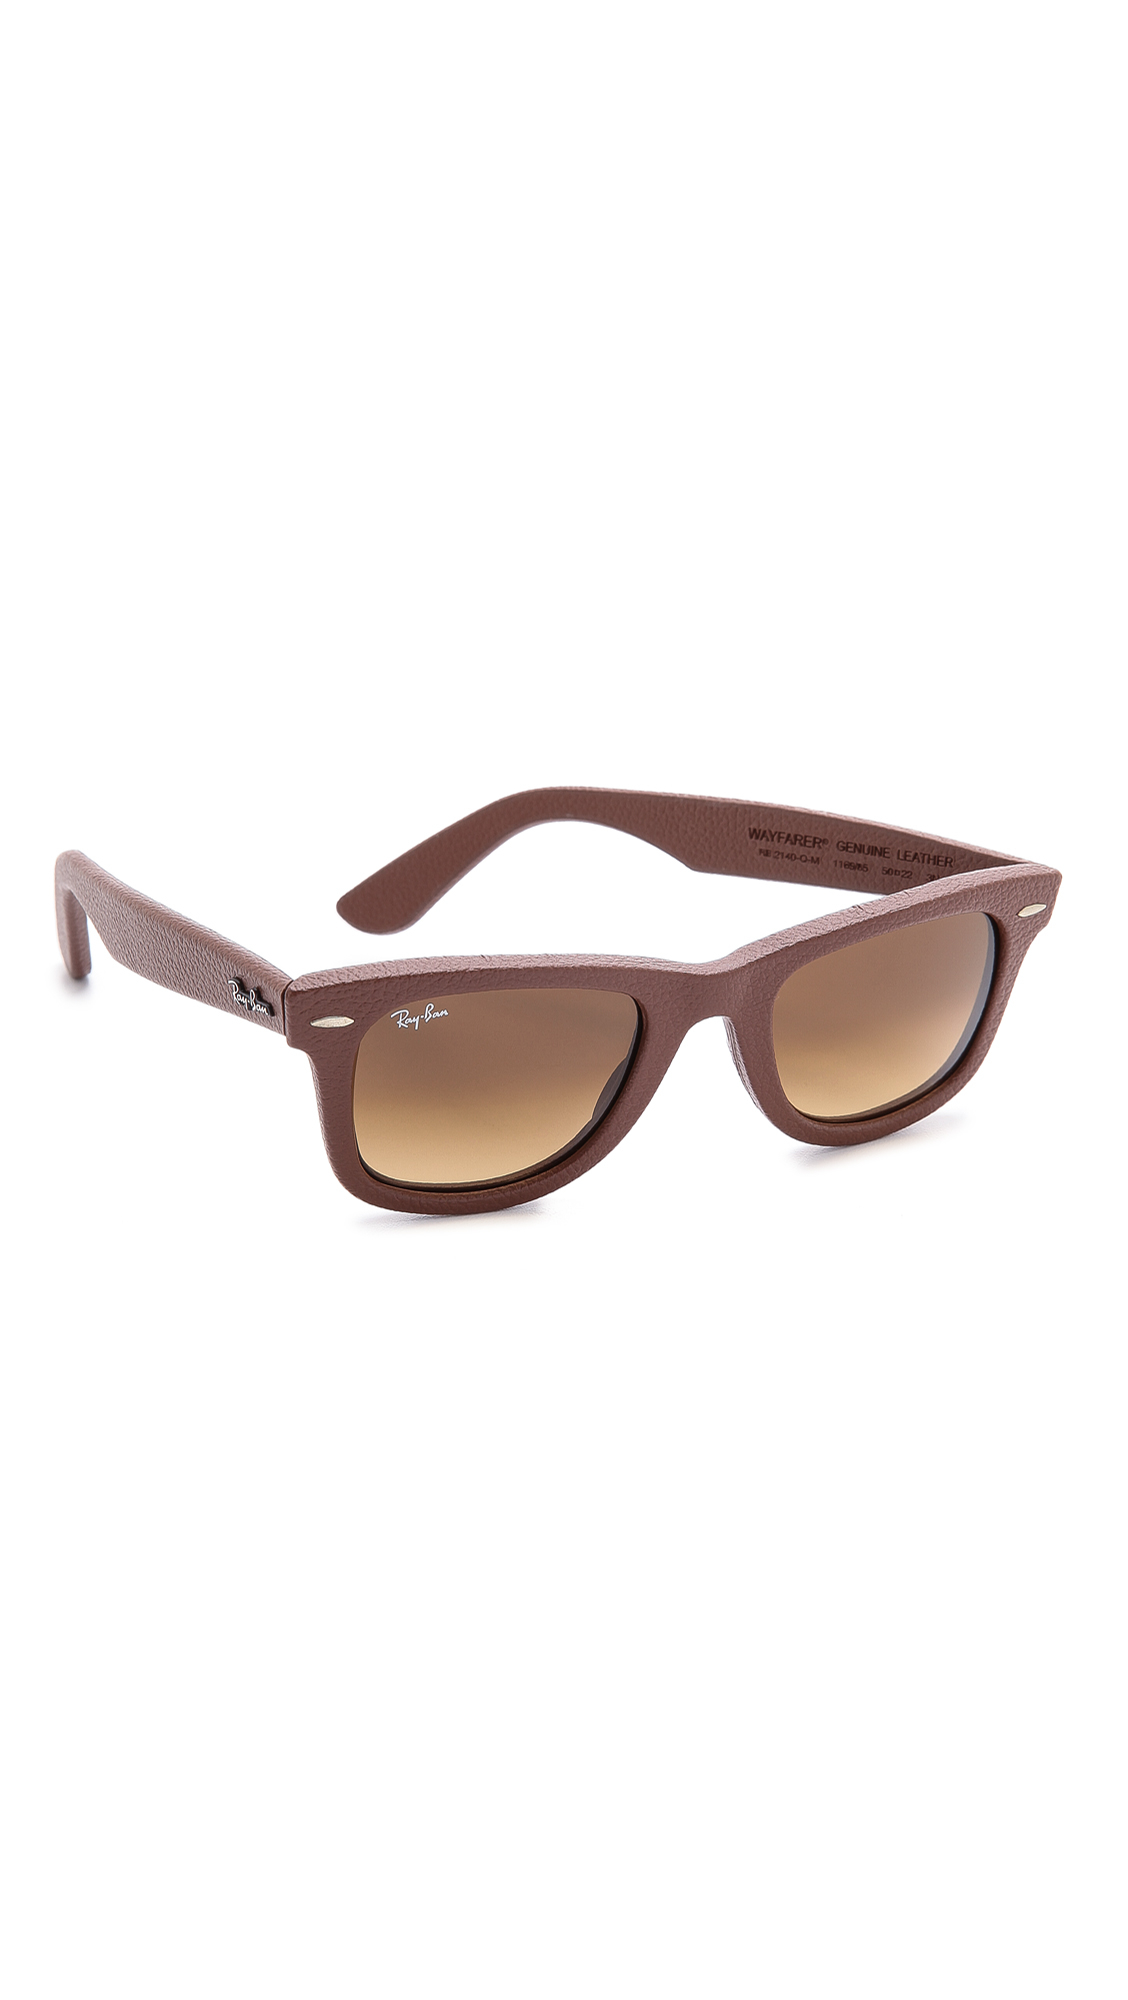 e5b1e01ad8 ... reduced lyst ray ban leather wrapped wayfarer sunglasses in brown for  men ada20 5b323